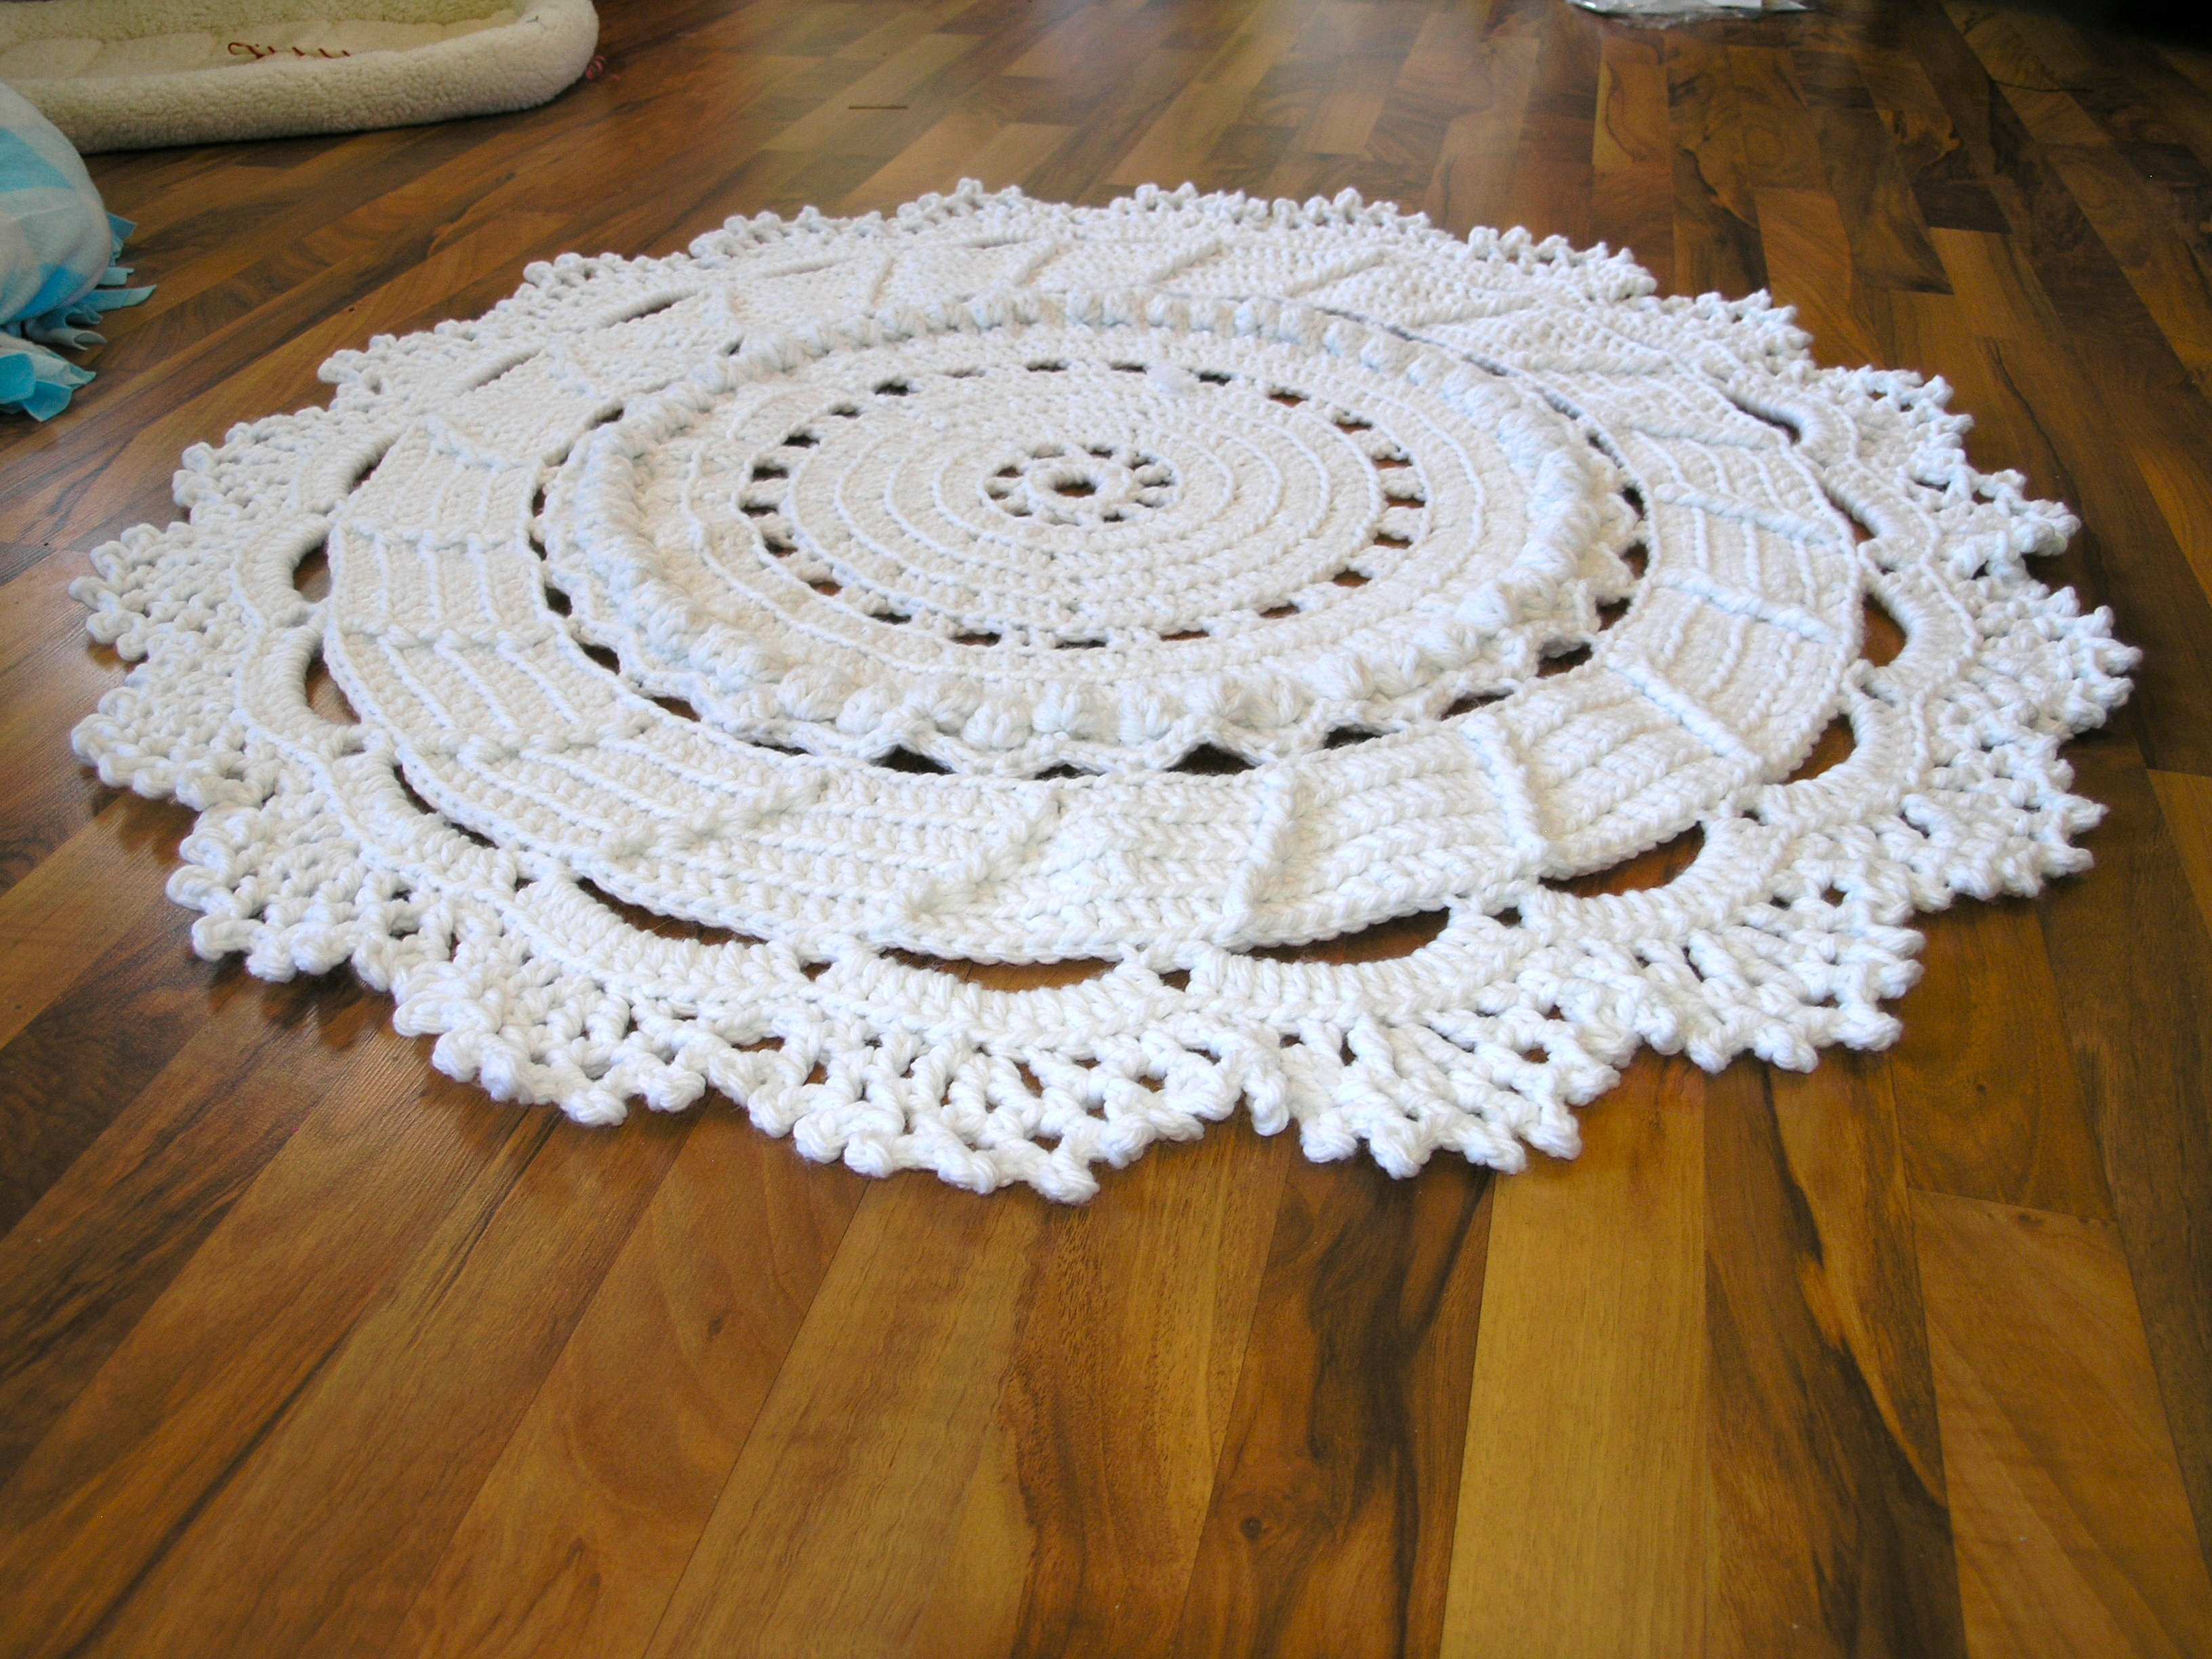 Crocheting A Rug : ... Wools ? Blog Archive ? A Giant Crochet Doily Rug for Our Living Room